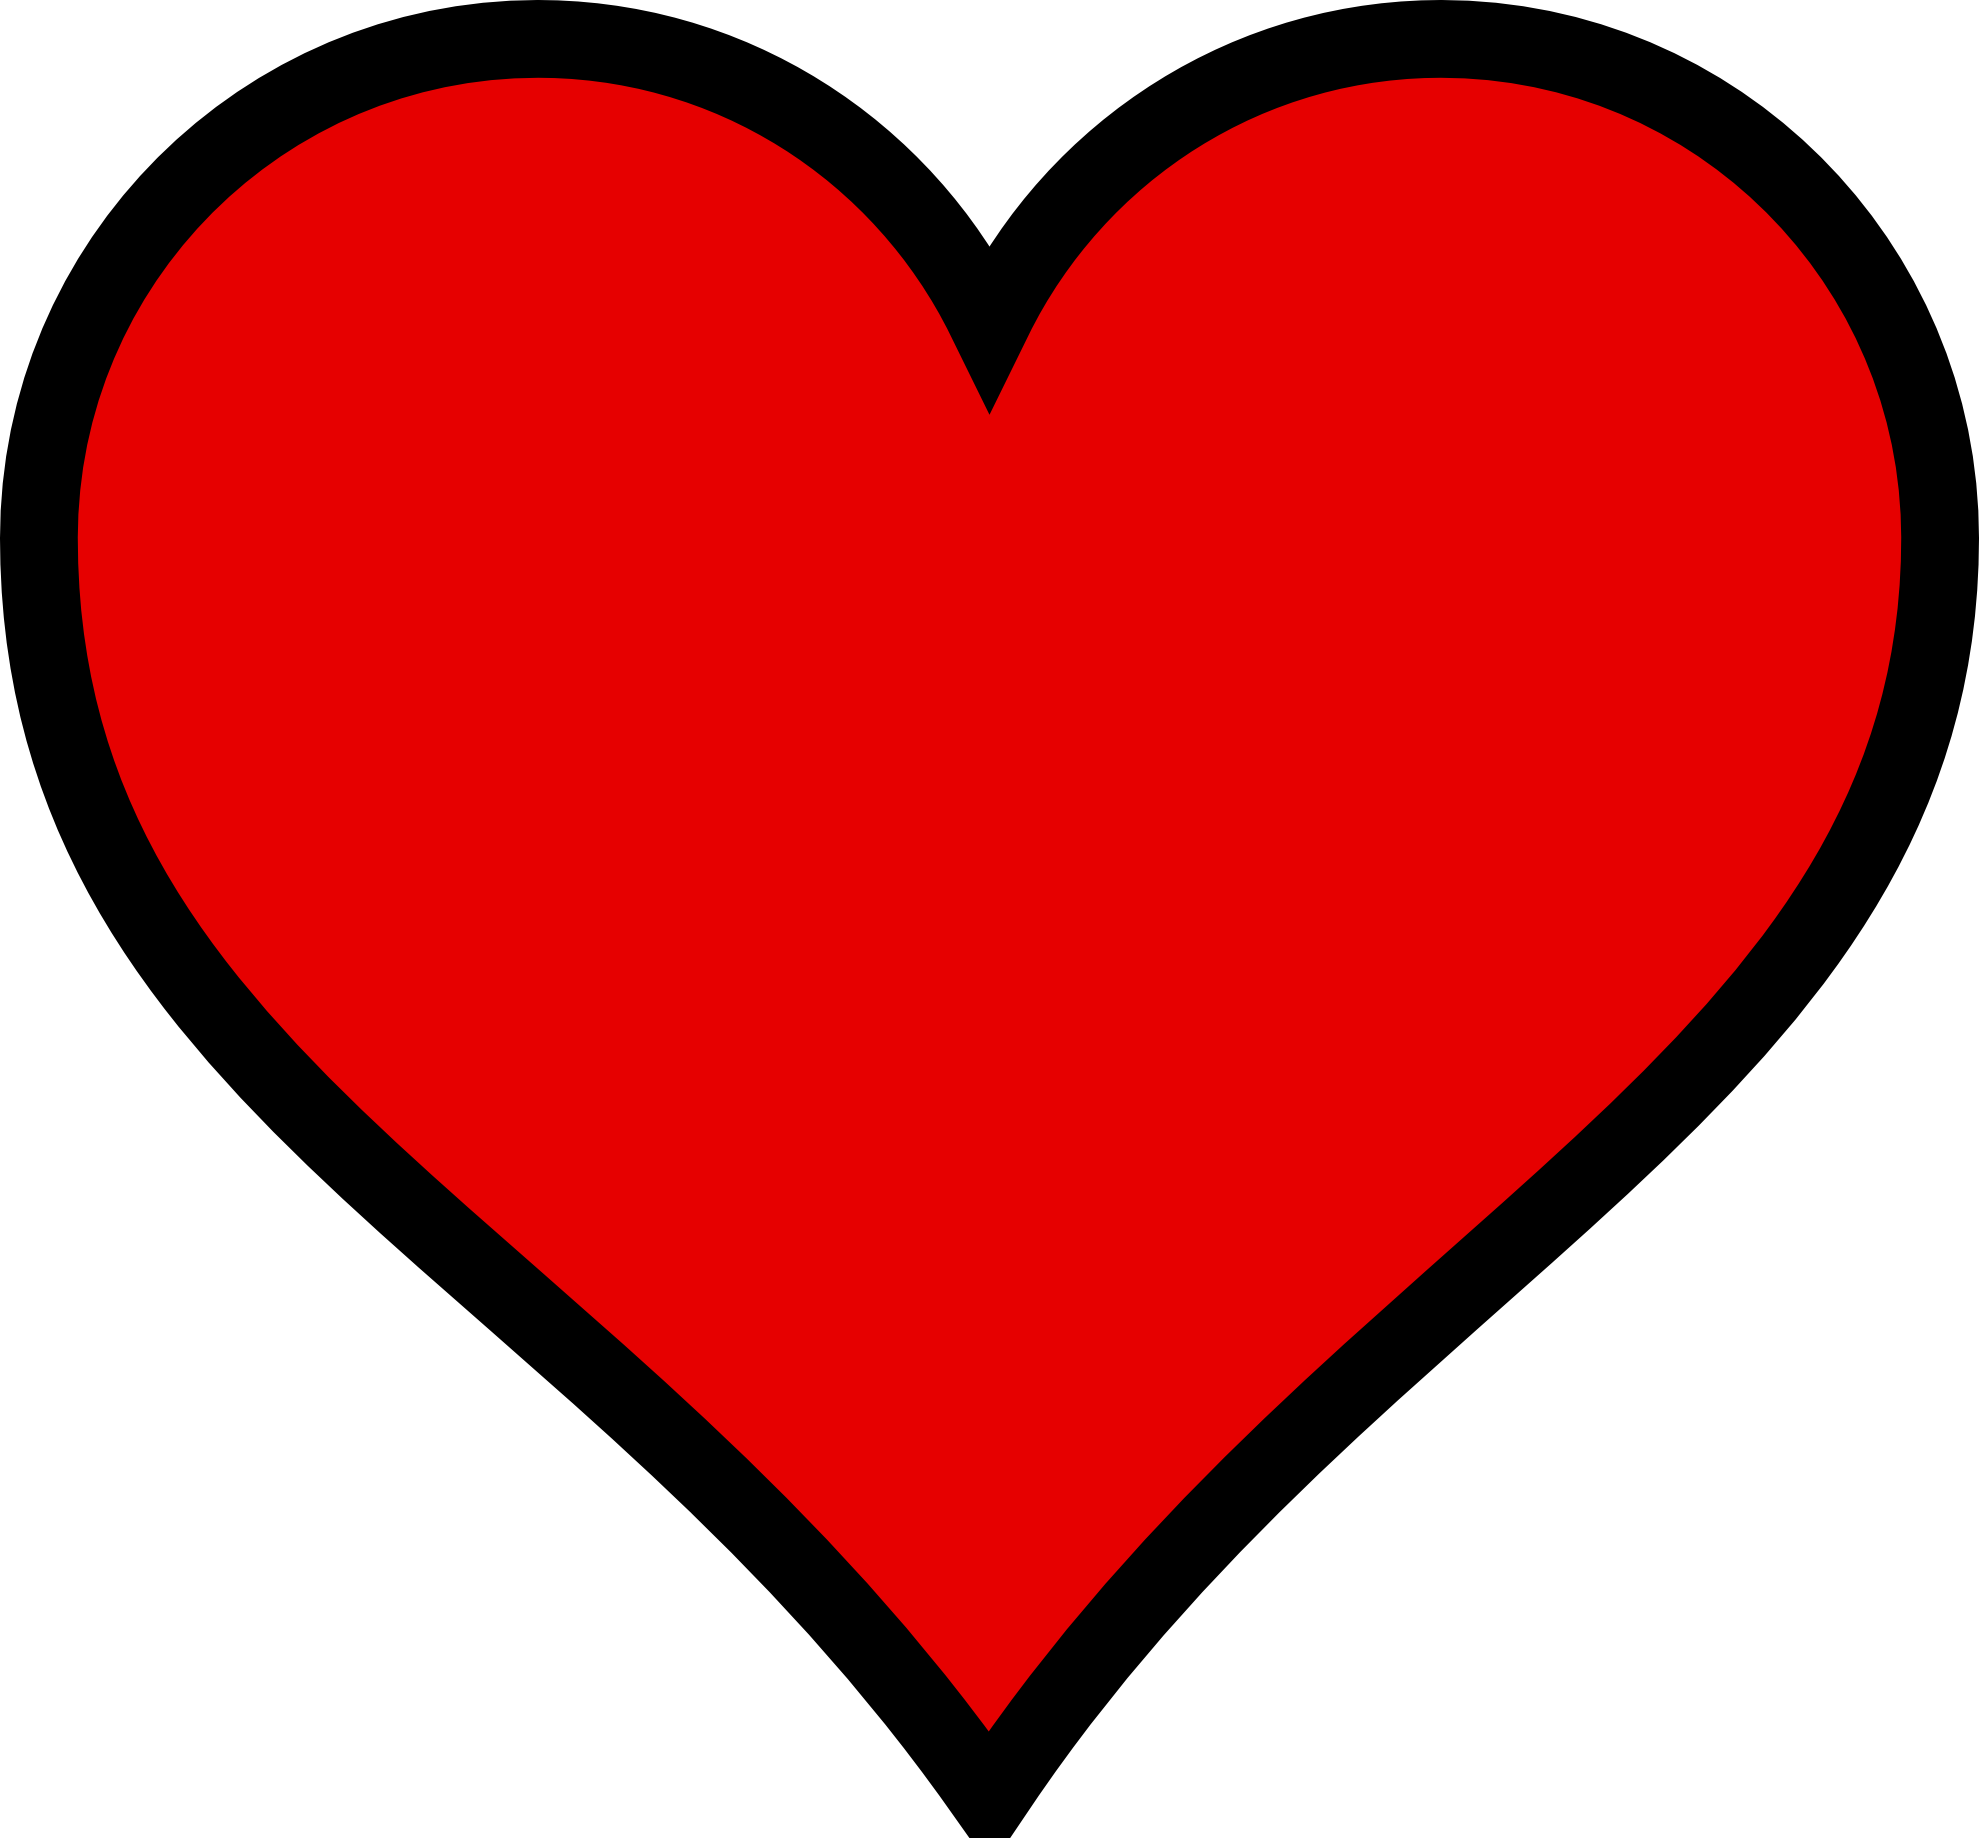 Free Valentine Heart Cliparts, Download Free Clip Art, Free.